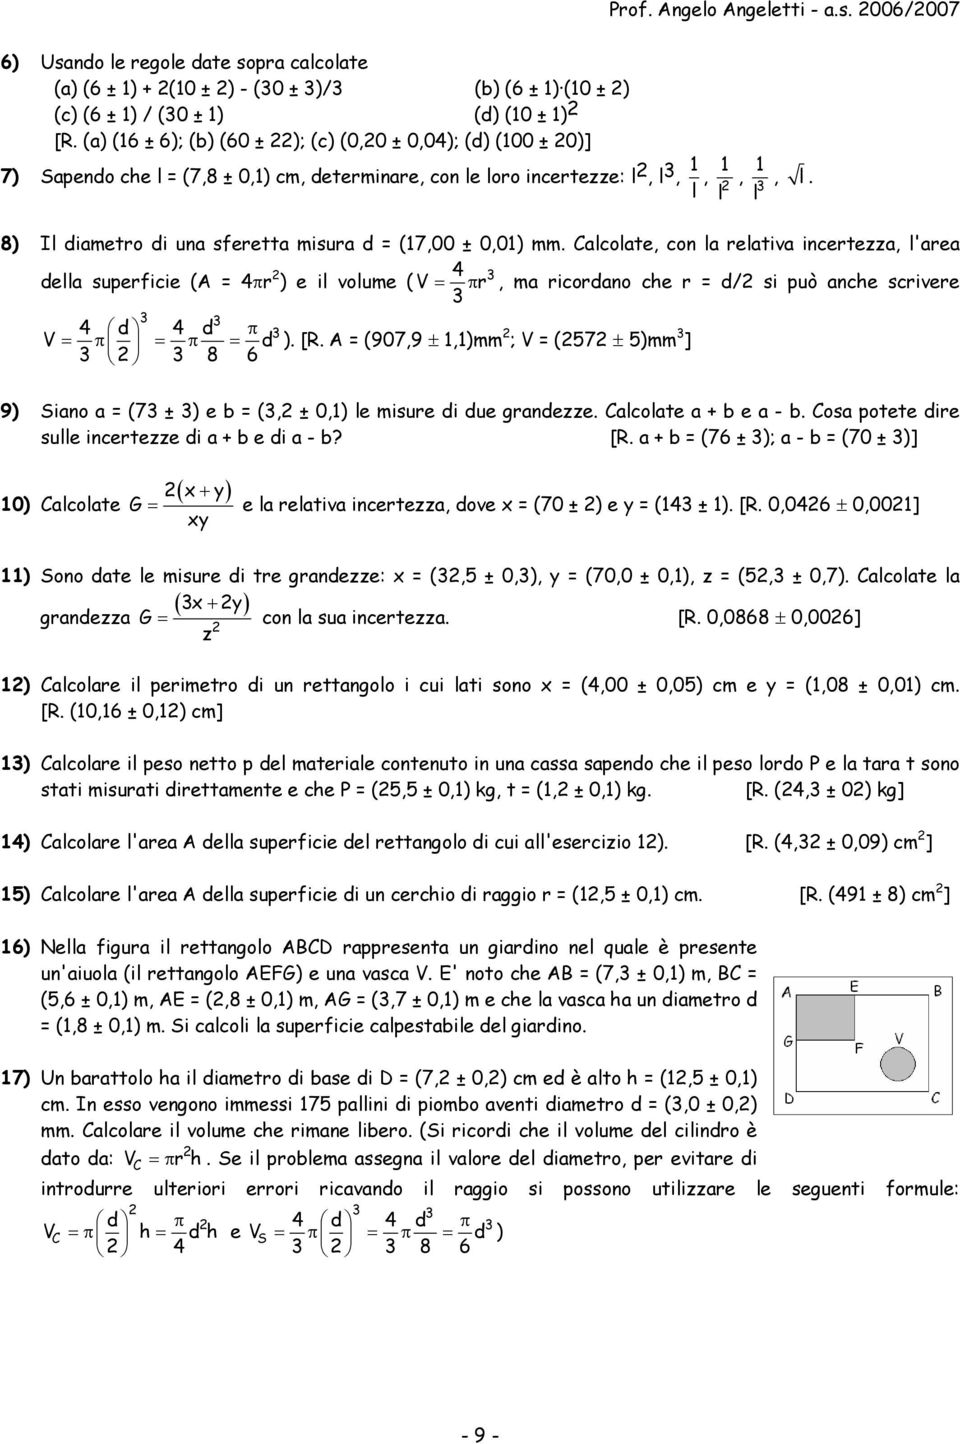 Clcolte, co l eltiv icetezz, l'e dell supeficie (A = 4π 4 3 ) e il volume ( V = π, m icodo che = d/ si può che scivee 3 3 3 4 d 4 d π 3 V = π = π = d ). [R.